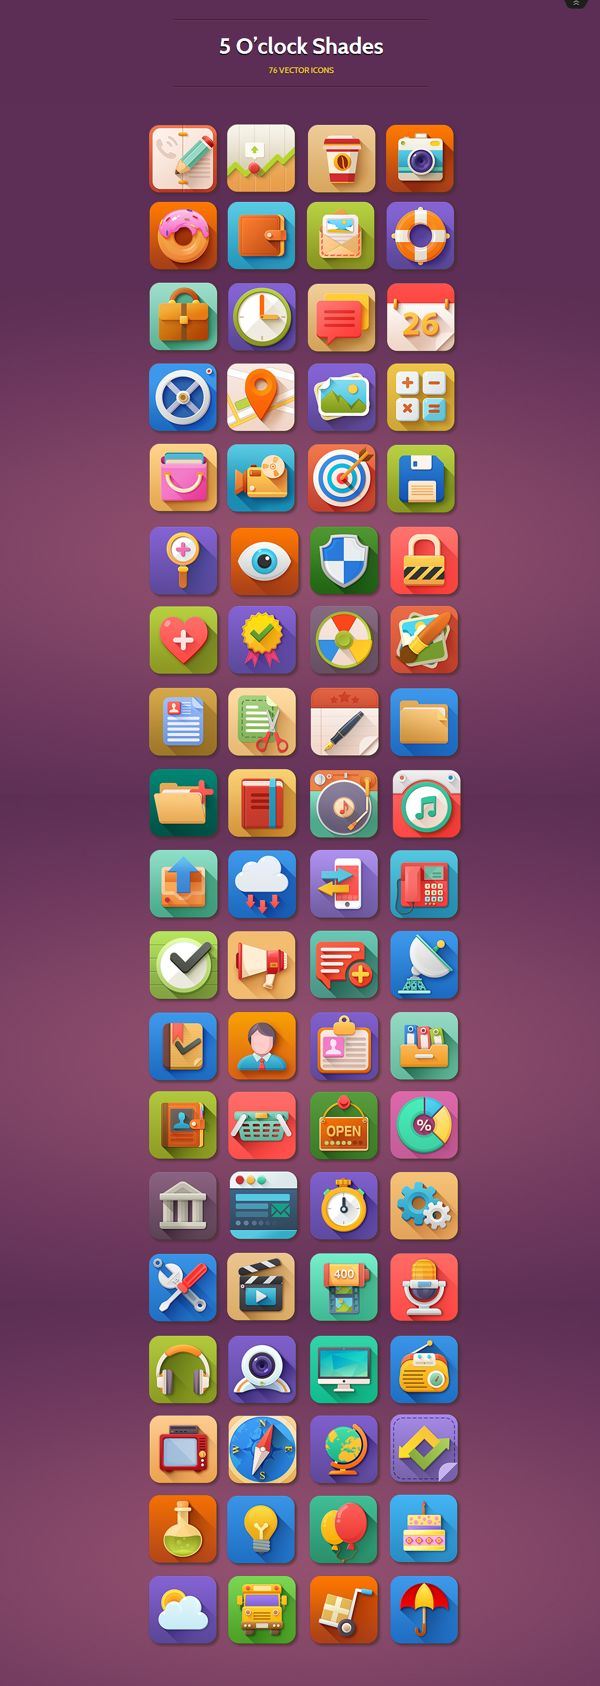 5 O'clock Shades Icon Set by WordPress Awards , via Behance